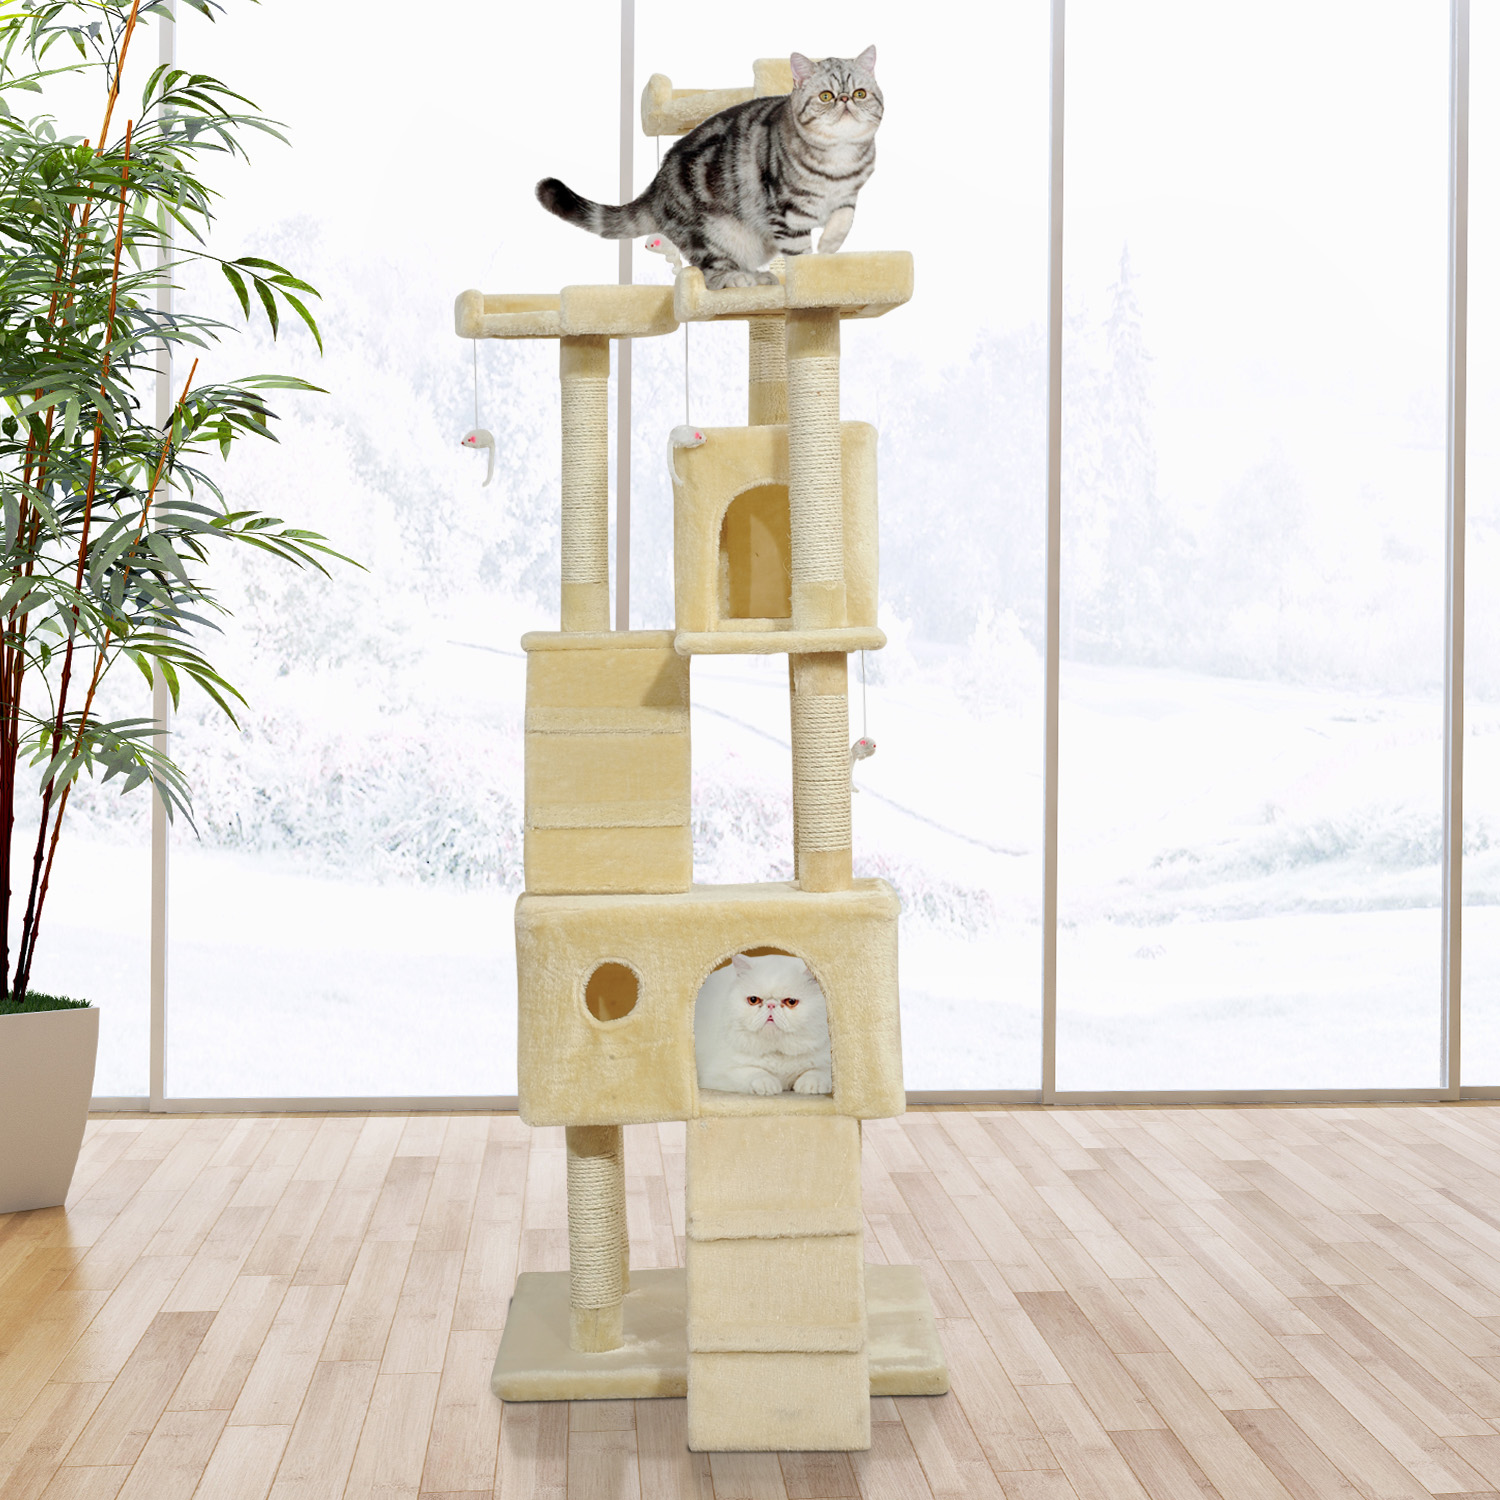 Image of CAD $112.99 PawHut 71in Deluxe Multi-Level Scratching Cat Tree Play House with Two Condos and Toys Beige / 71inch Condo Post Kitten Activity Center Pet Furniture Kitty Canada 25093585753